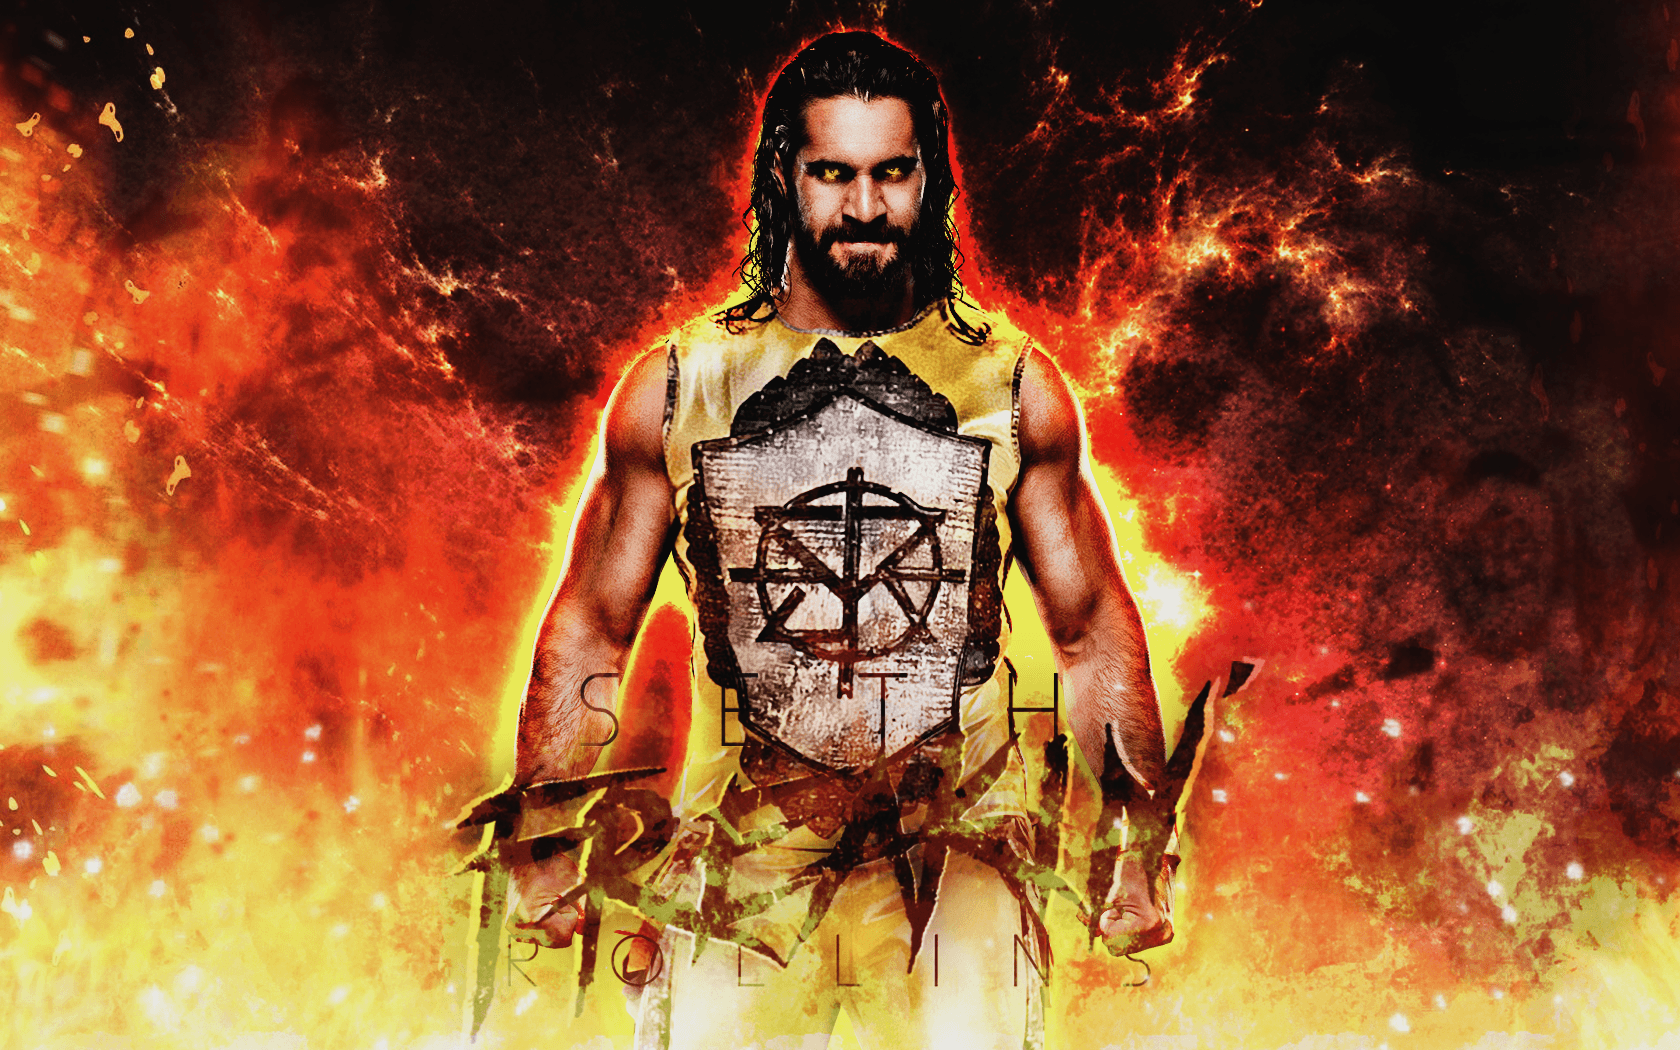 wwe seth rollins wallpapers - wallpaper cave